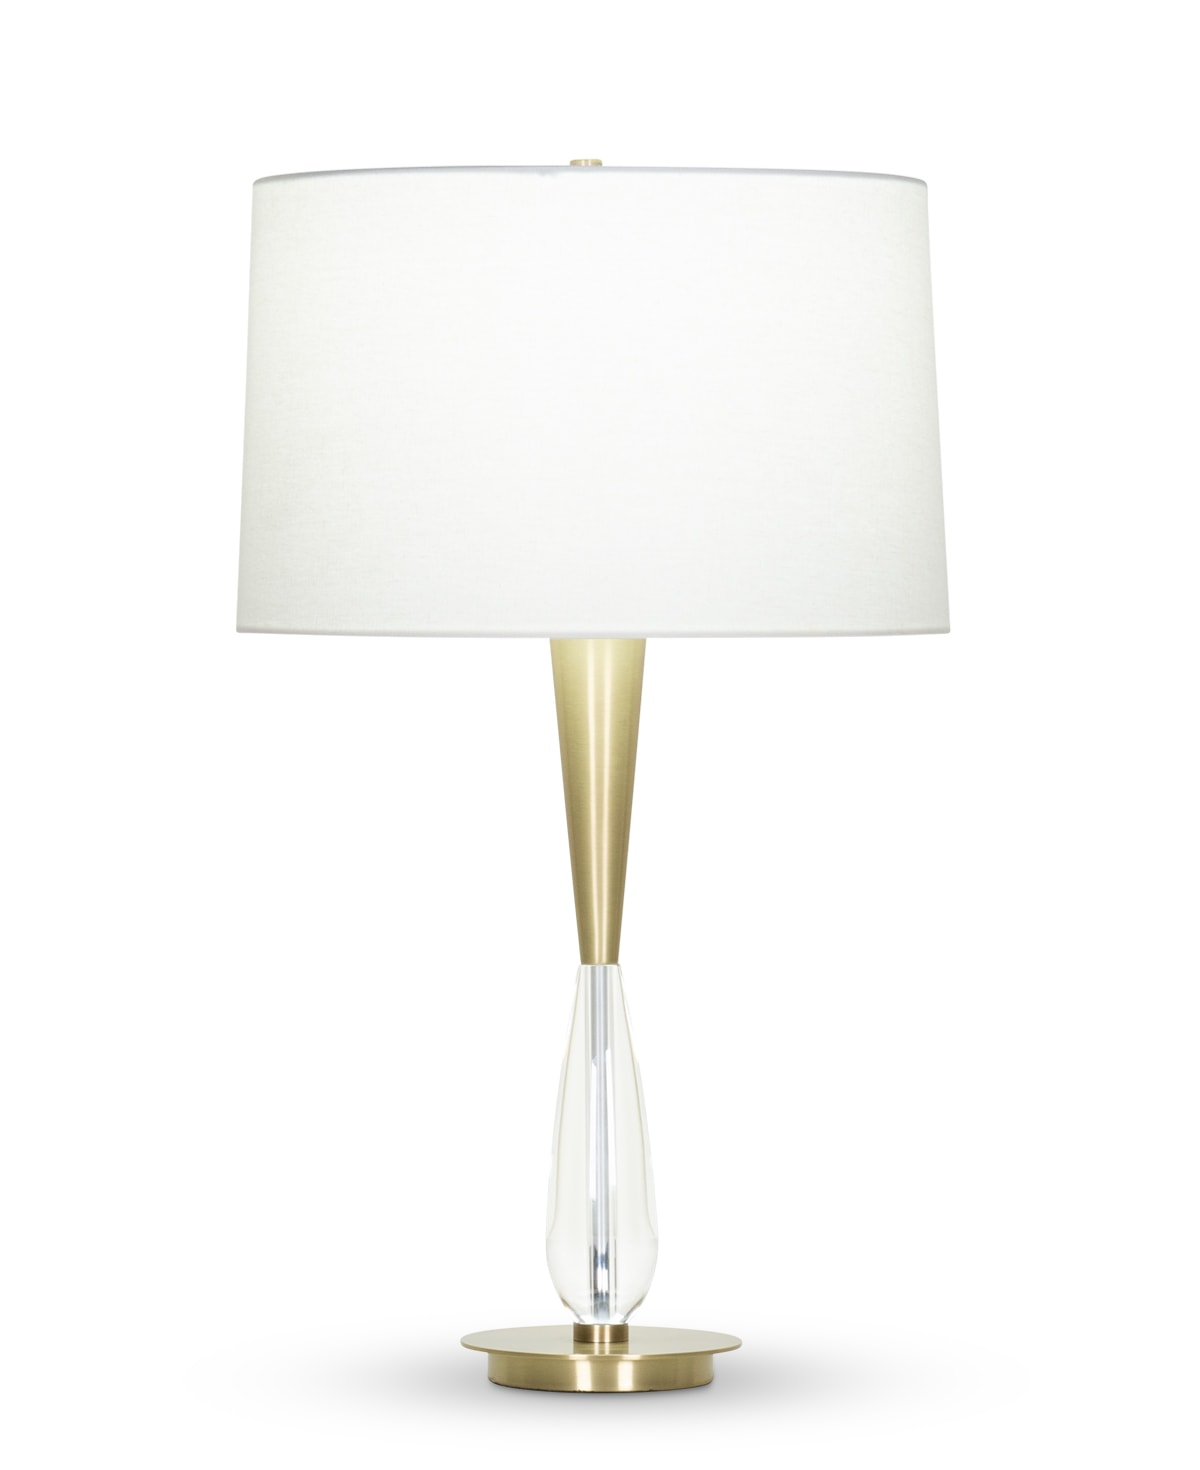 FlowDecor Violet Table Lamp in crystal and metal with antique brass finish and off-white linen tapered drum shade (# 4358)